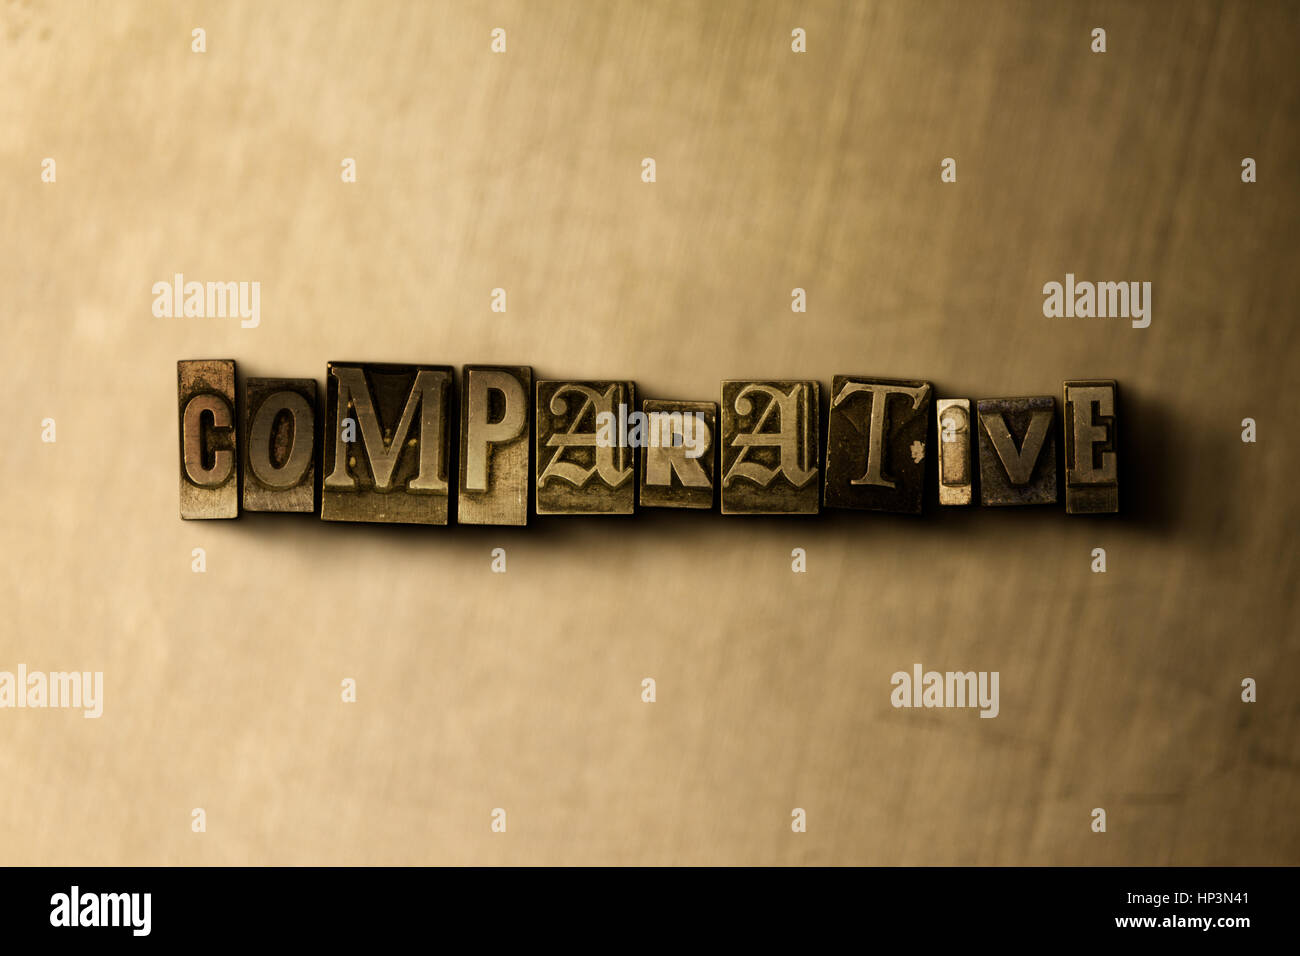 COMPARATIVE - close-up of grungy vintage typeset word on metal backdrop. Royalty free stock illustration.  Can be - Stock Image